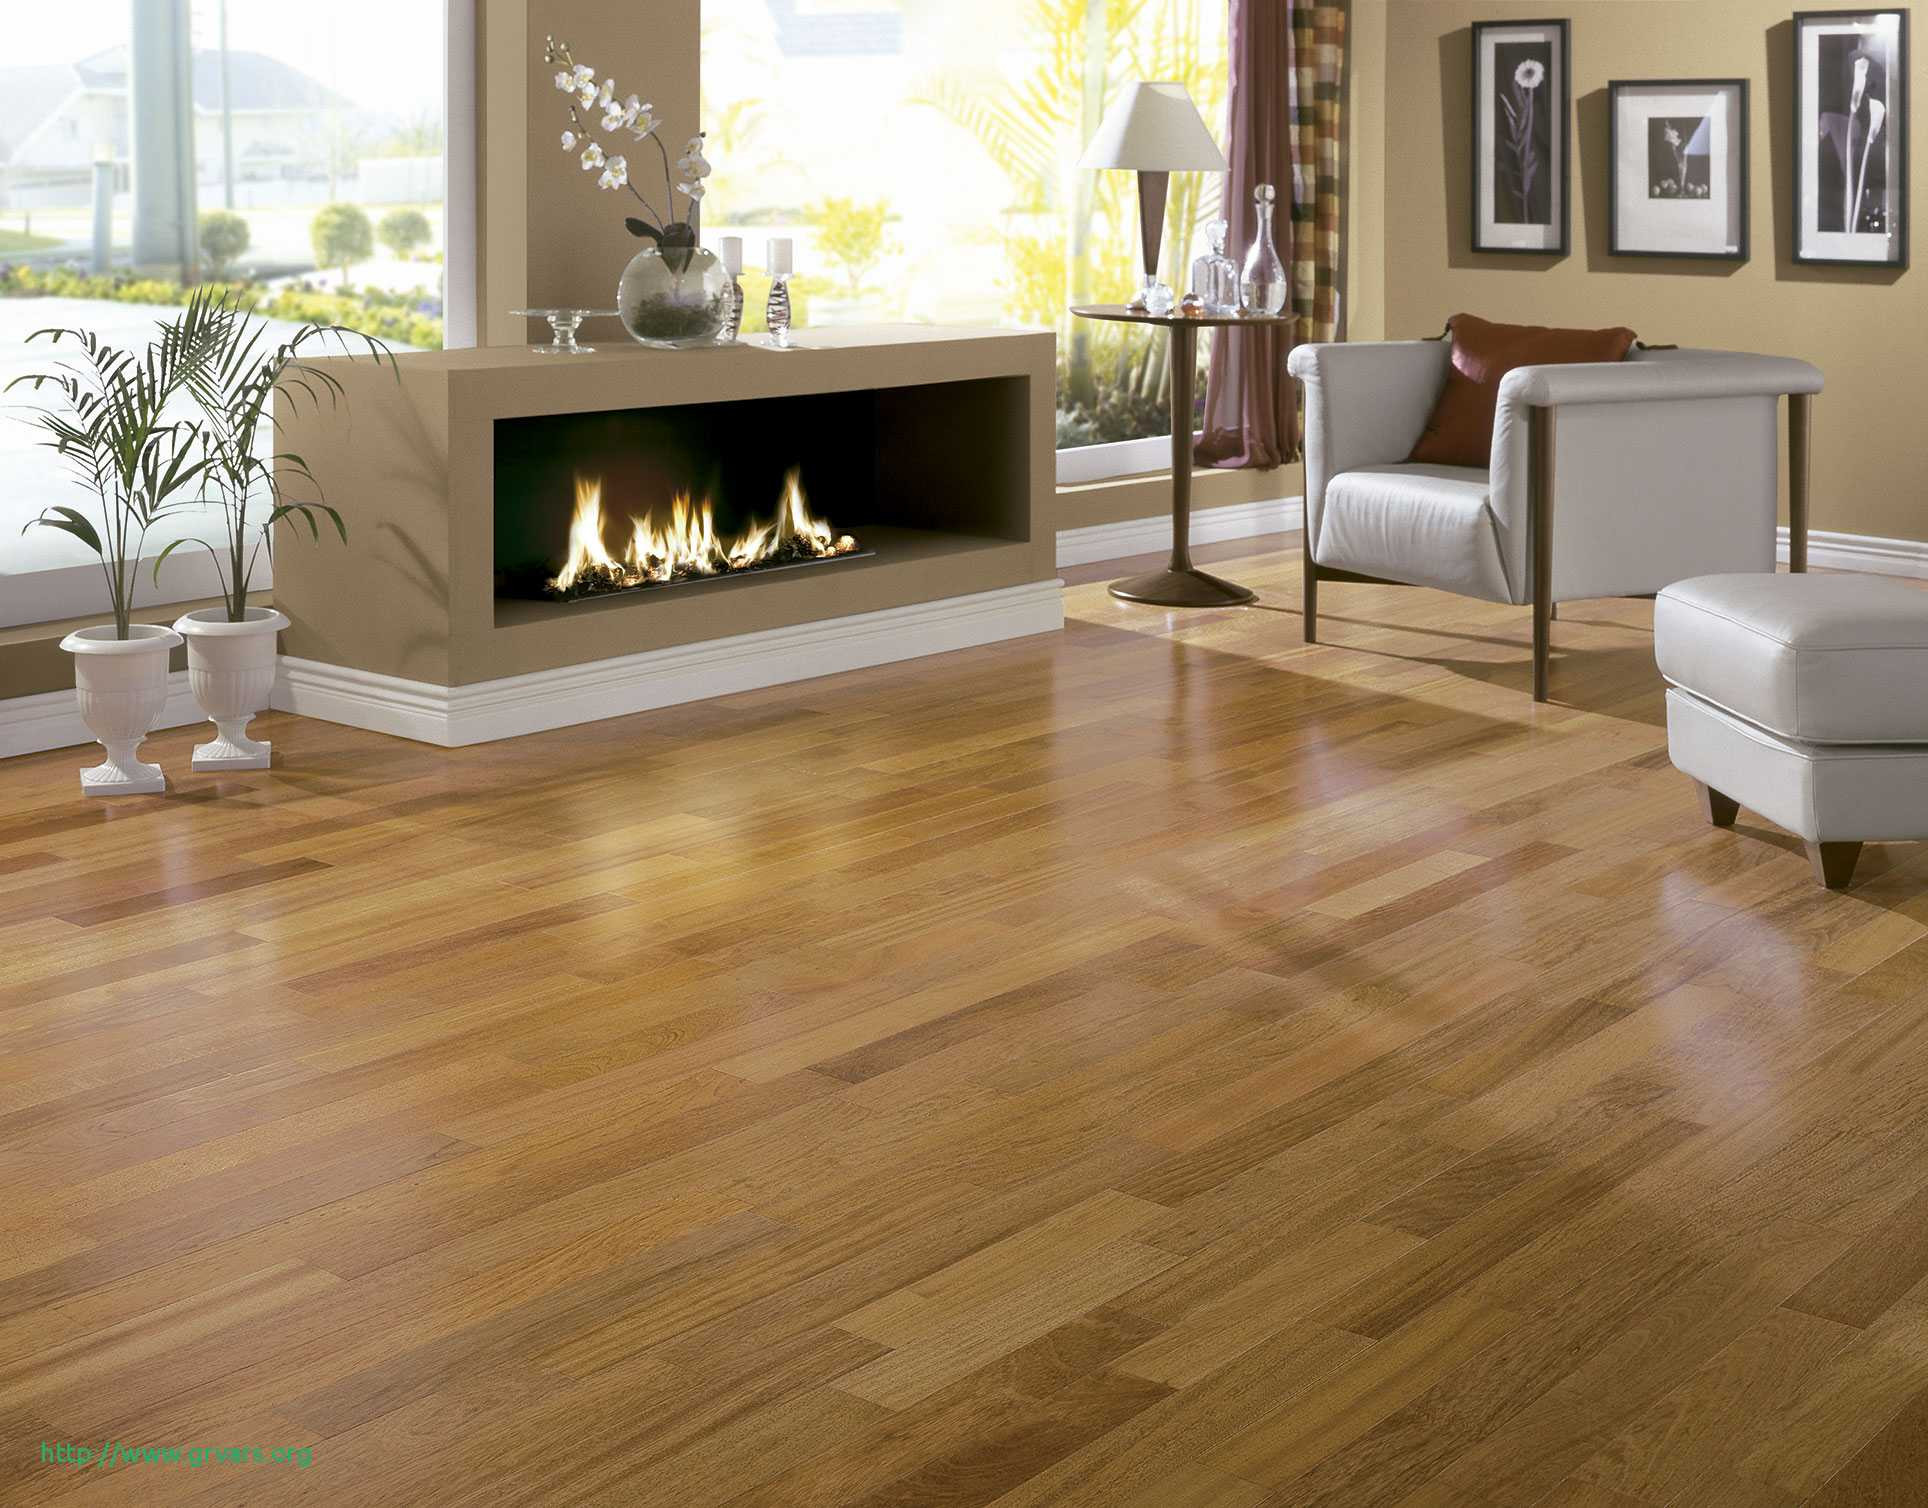 babies and hardwood floors of cost of laying wooden floor charmant guide to solid hardwood floors in cost of laying wooden floor a‰lagant engaging discount hardwood flooring 5 where to buy inspirational 0d